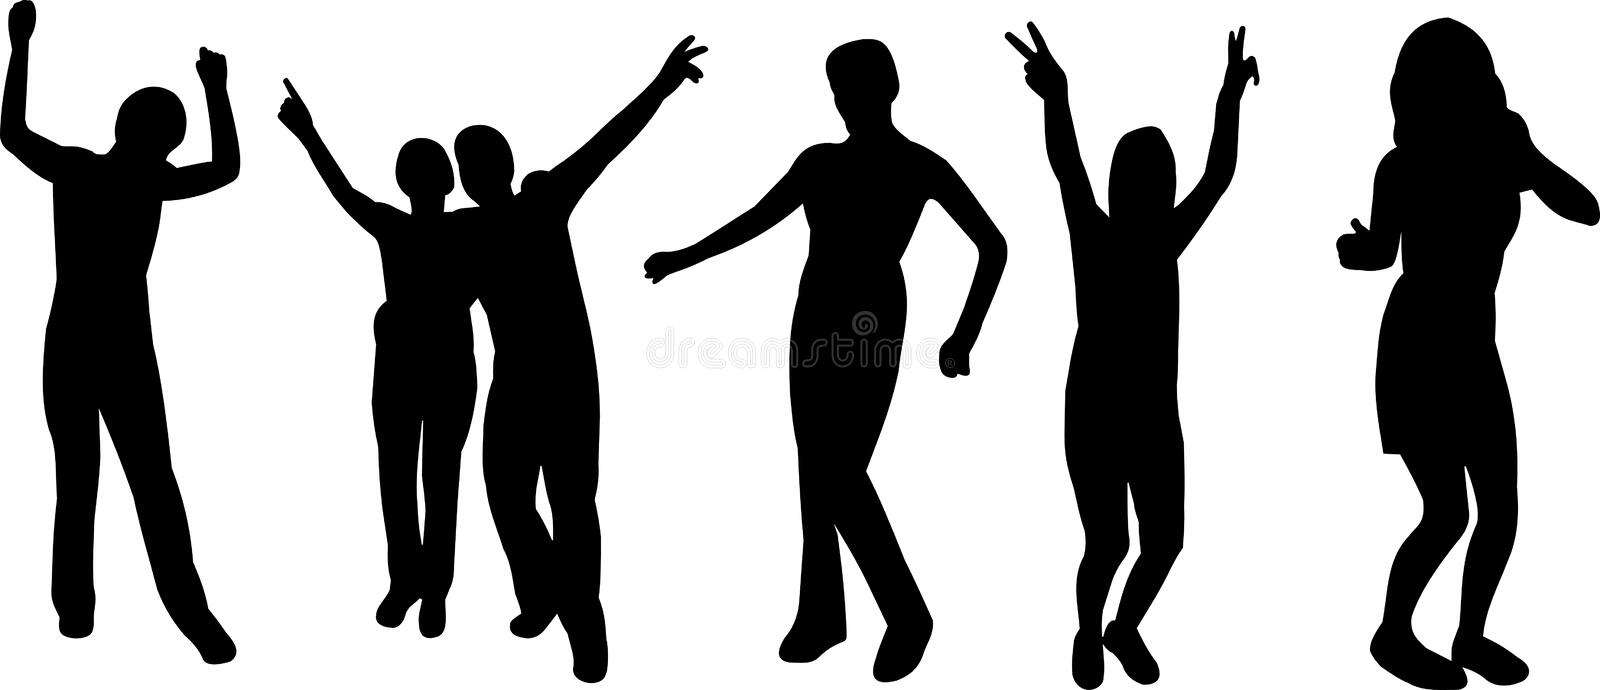 Download Group of silhouettes stock image. Image of dance, contour - 14850385